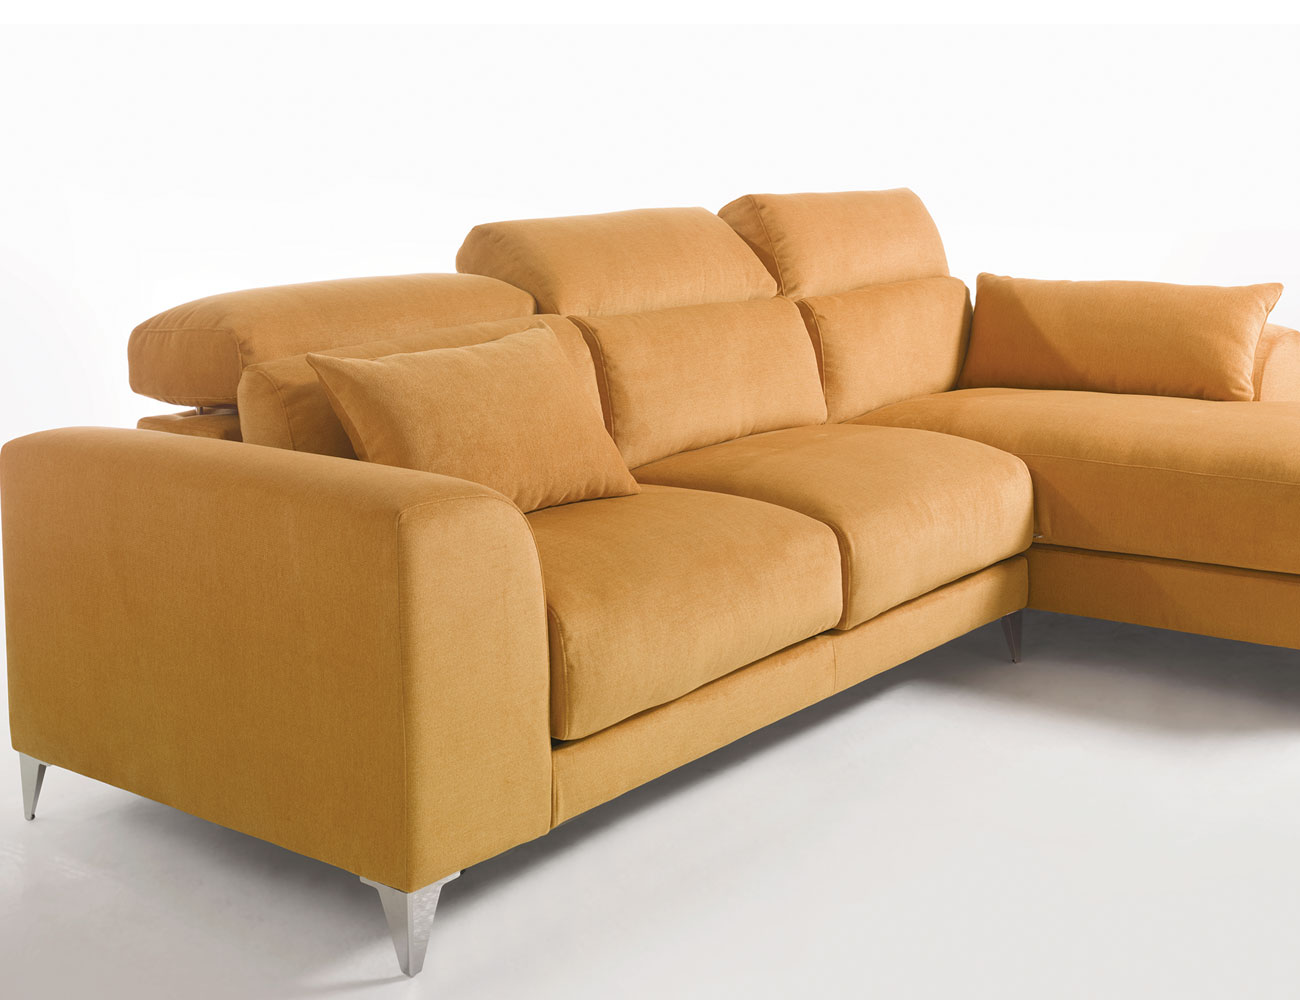 Sofa chaiselongue gran lujo decorativo patas altas amarillo 239